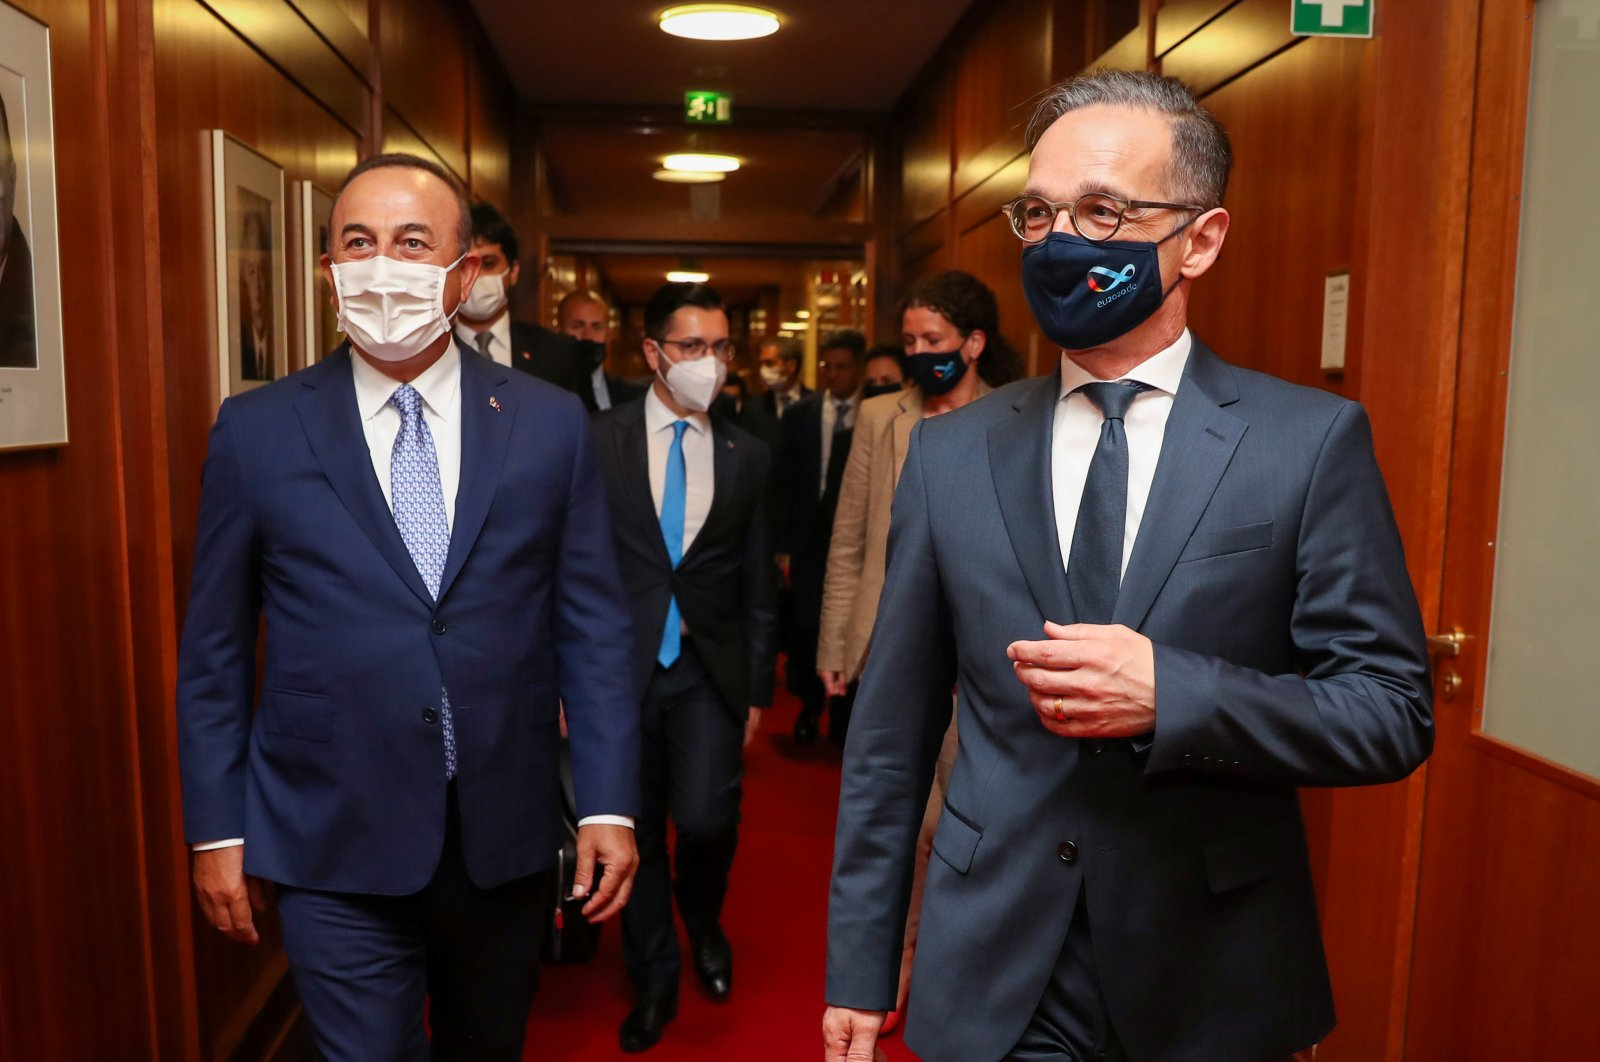 German Foreign Minister Heiko Maas and his Turkish counterpart Mevlut Cavusoglu, wearing protective face masks, walk before their meeting in Berlin, Germany July 2, 2020. (AA Photo)